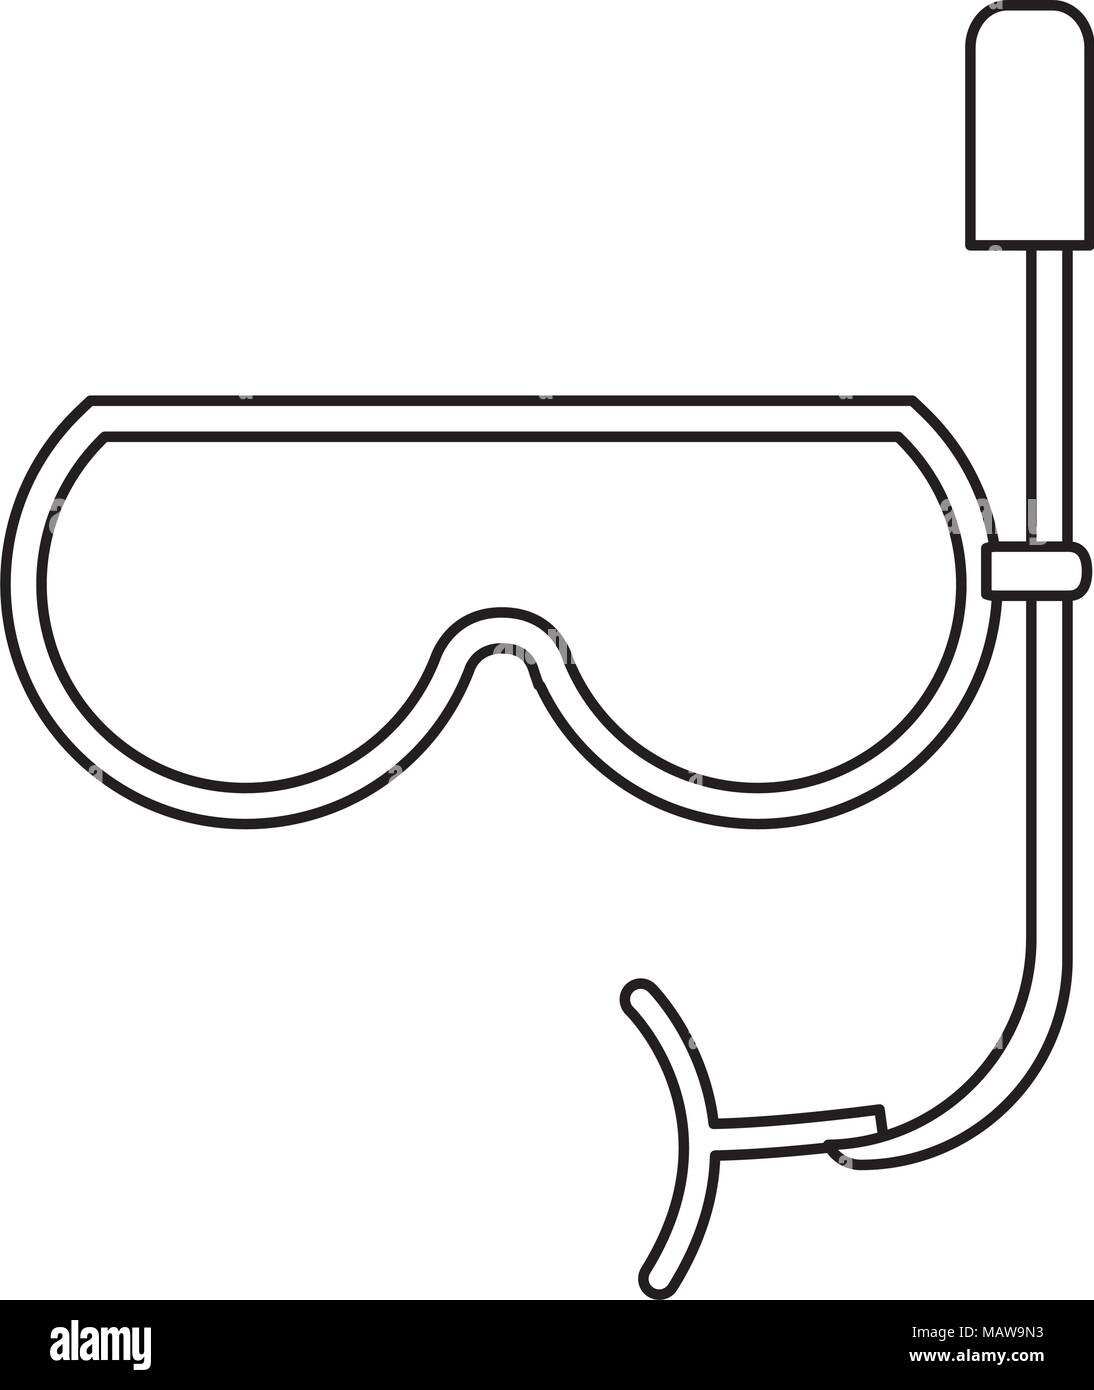 snorkel mask icon over white background, vector illustration - Stock Vector